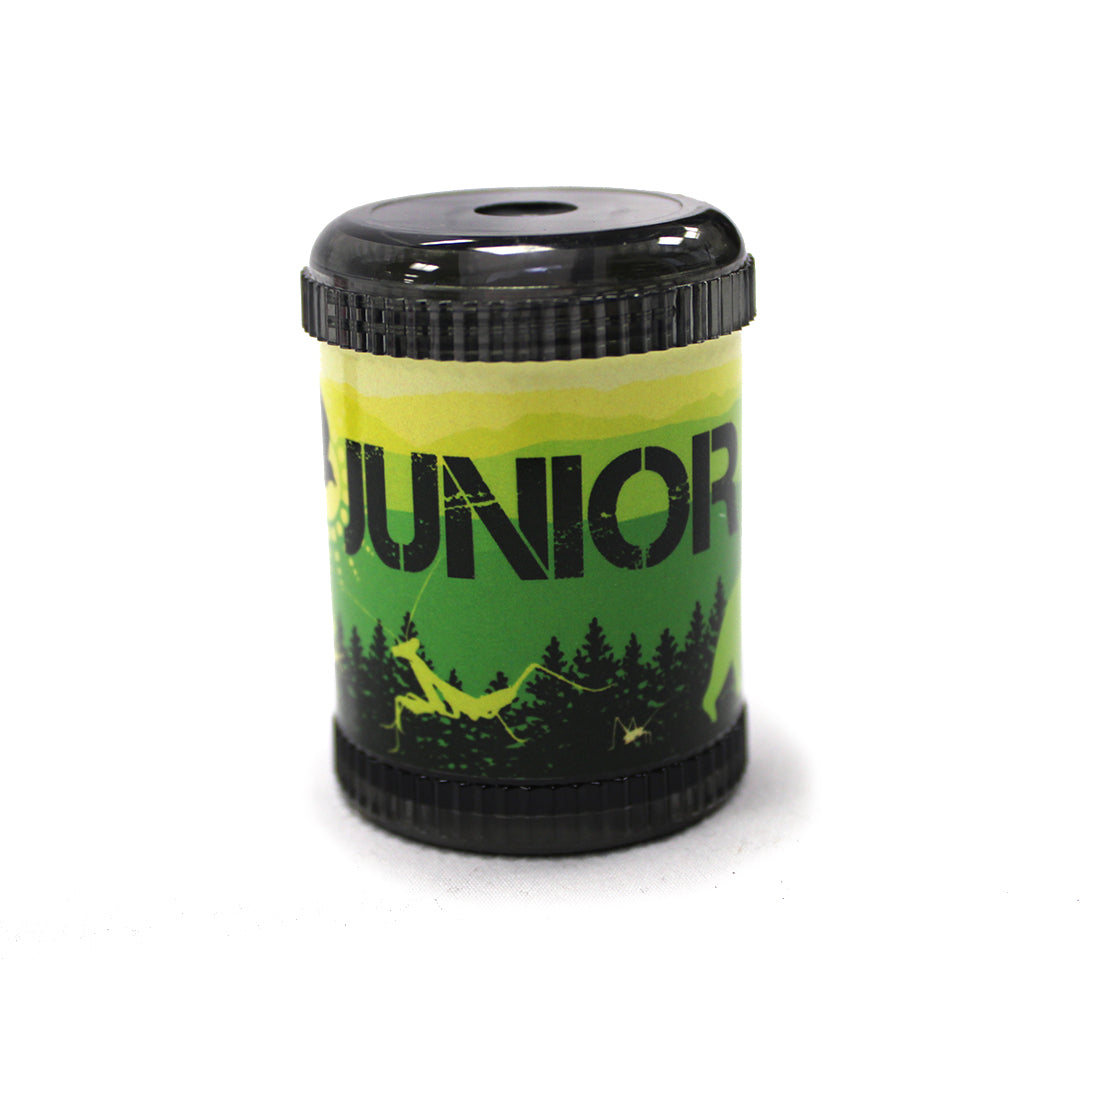 Junior Ranger Pencil Sharpener - Green